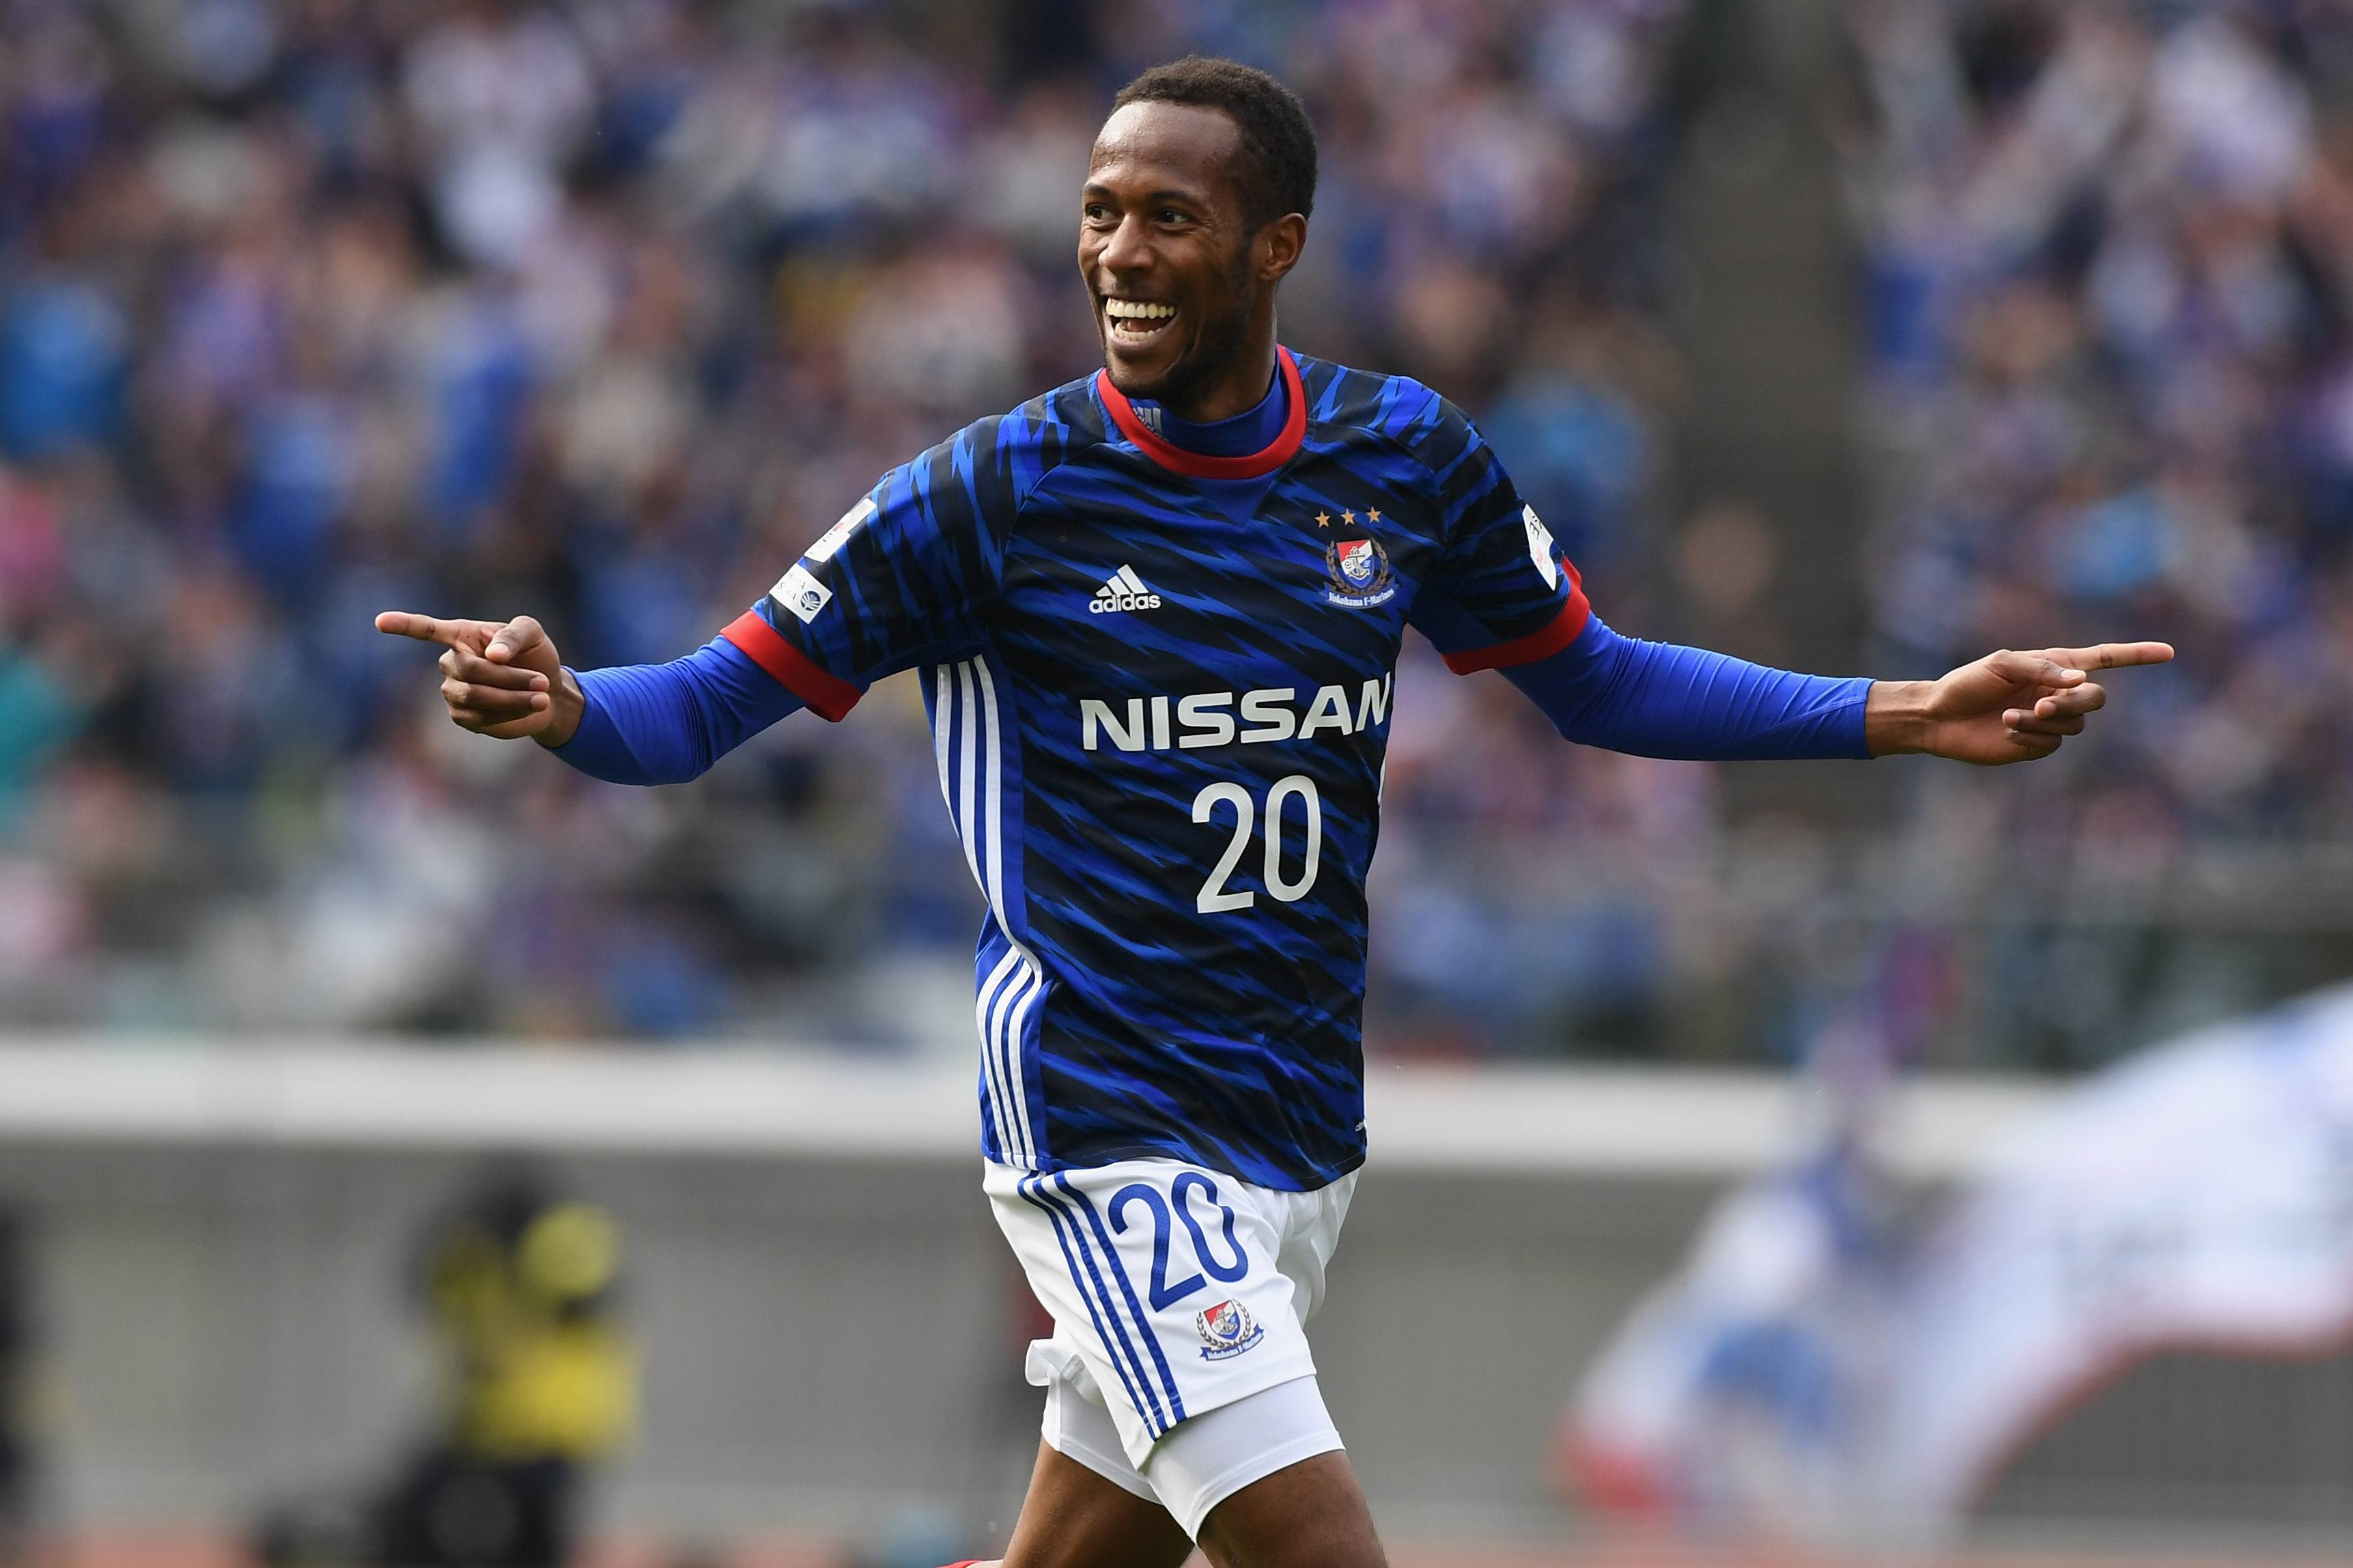 Exclusive: Urawa Reds capitalize on ACL purse with move for Marinos striker Martinus